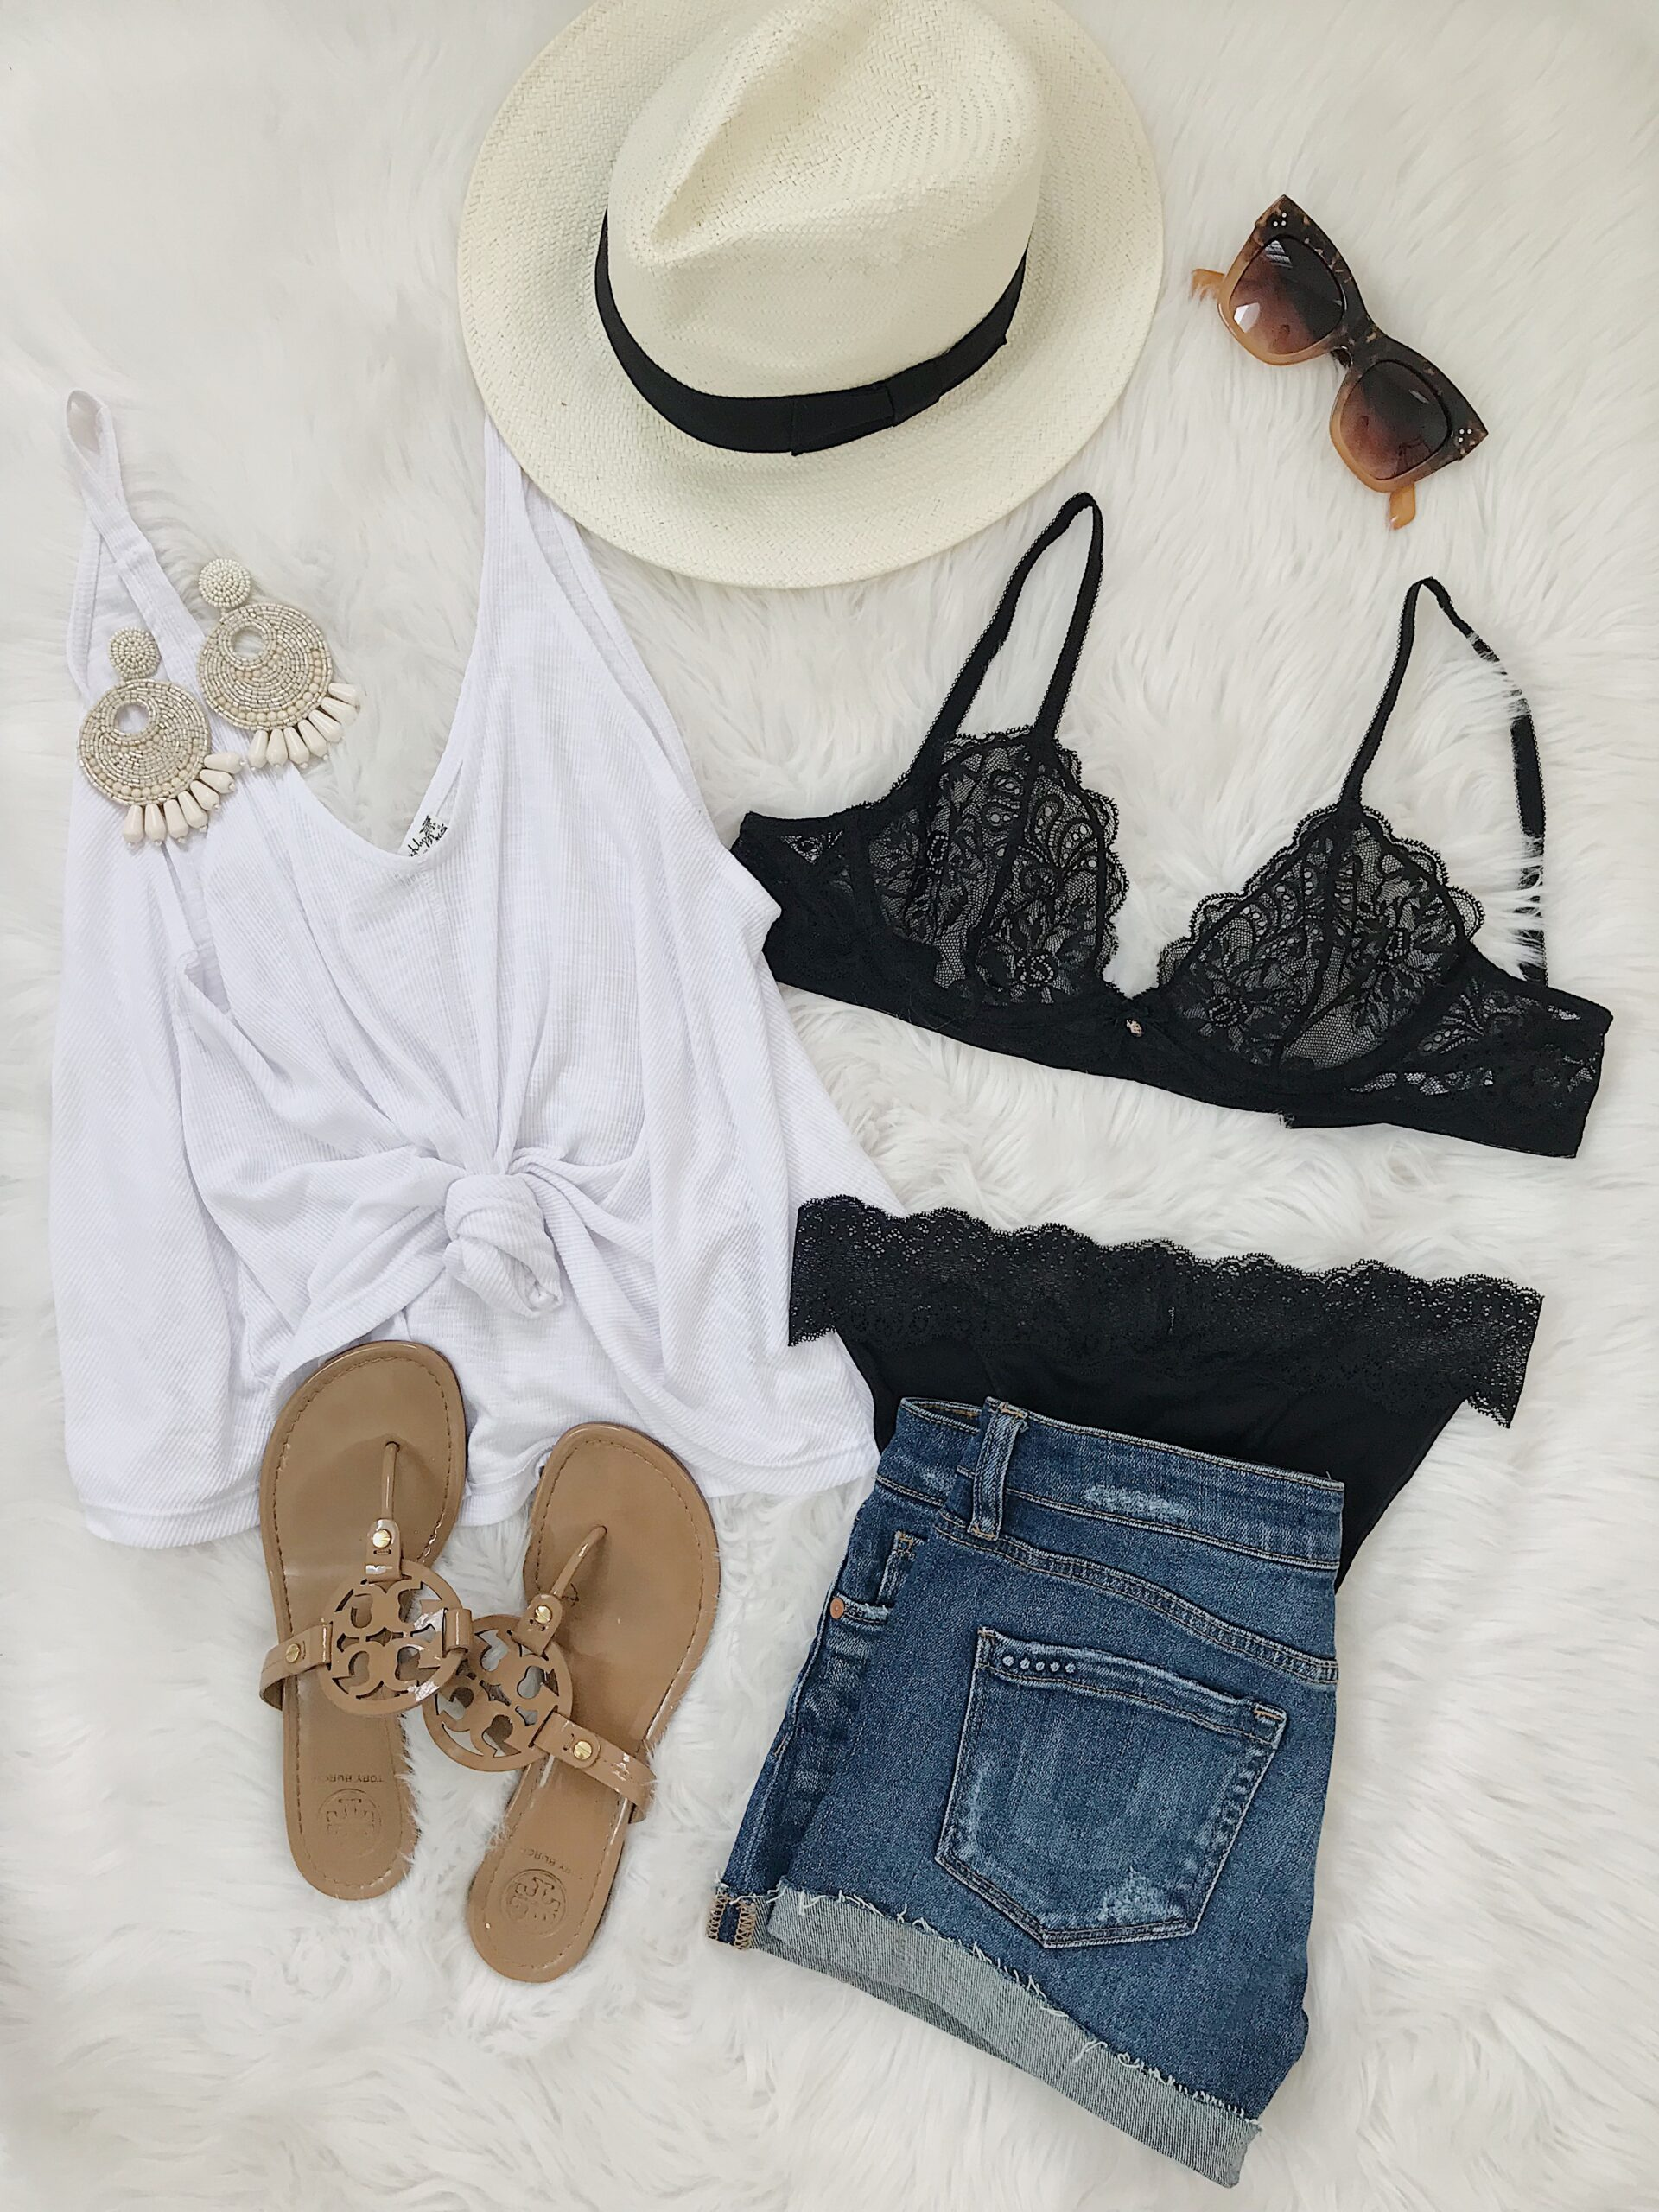 how to wear peek-a-boo lace bralette, summer outfit inspiration